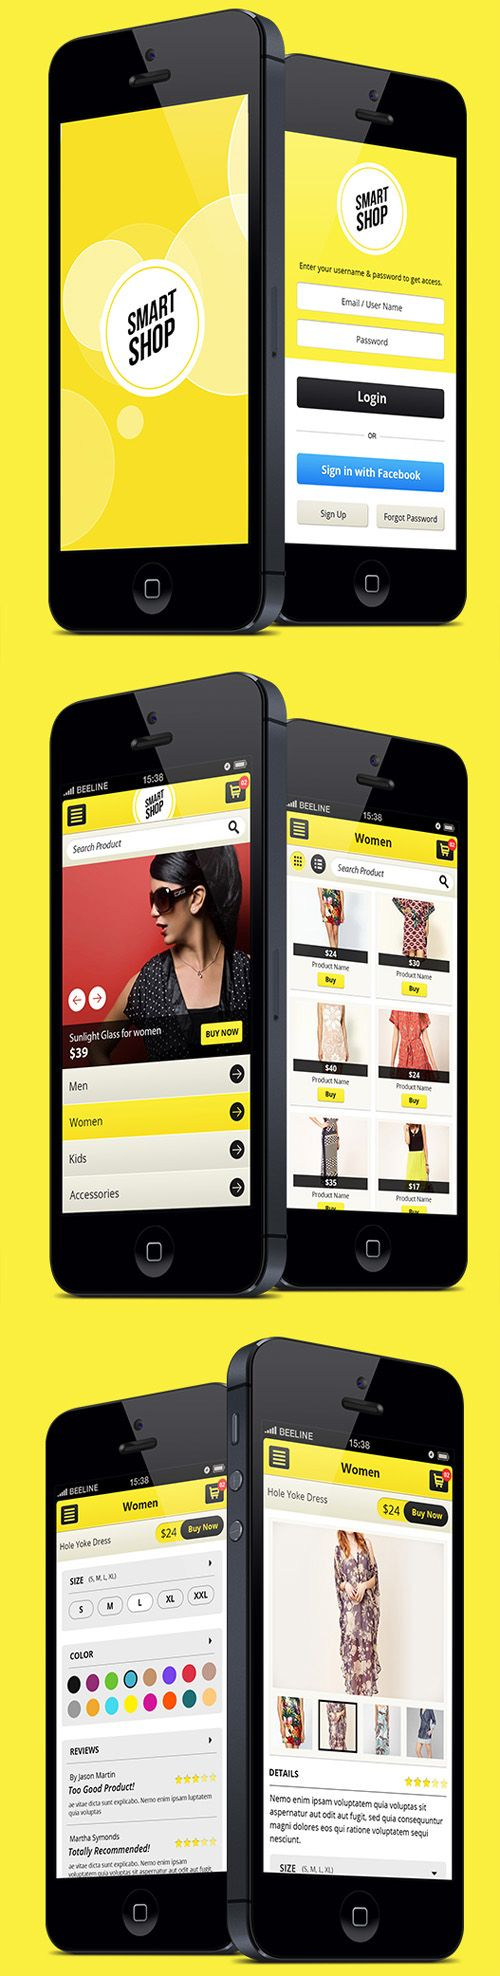 .Smart Shop : iOS Application Design Concept #Brandnista